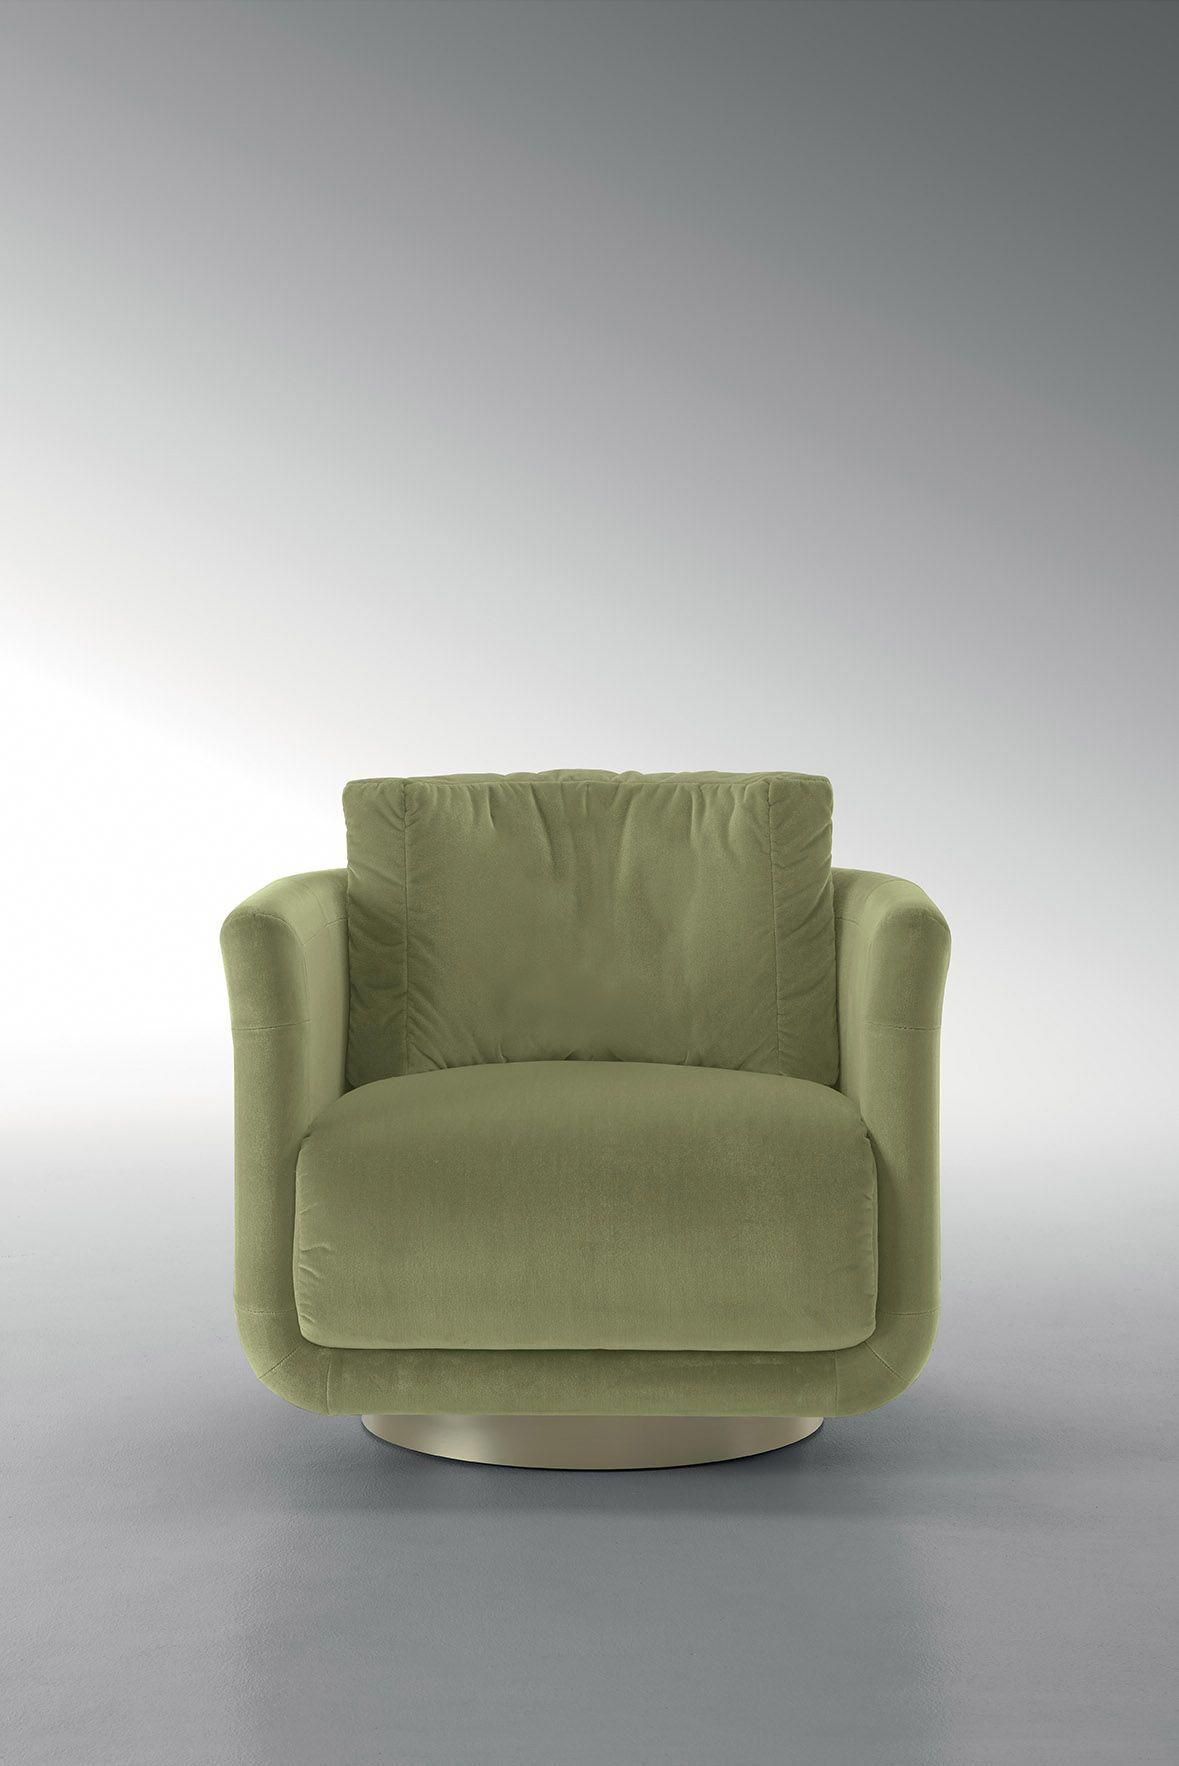 8e672429428 Small armchair from the Fendi Casa by Thierry Lemaire collection   smallarmchairs